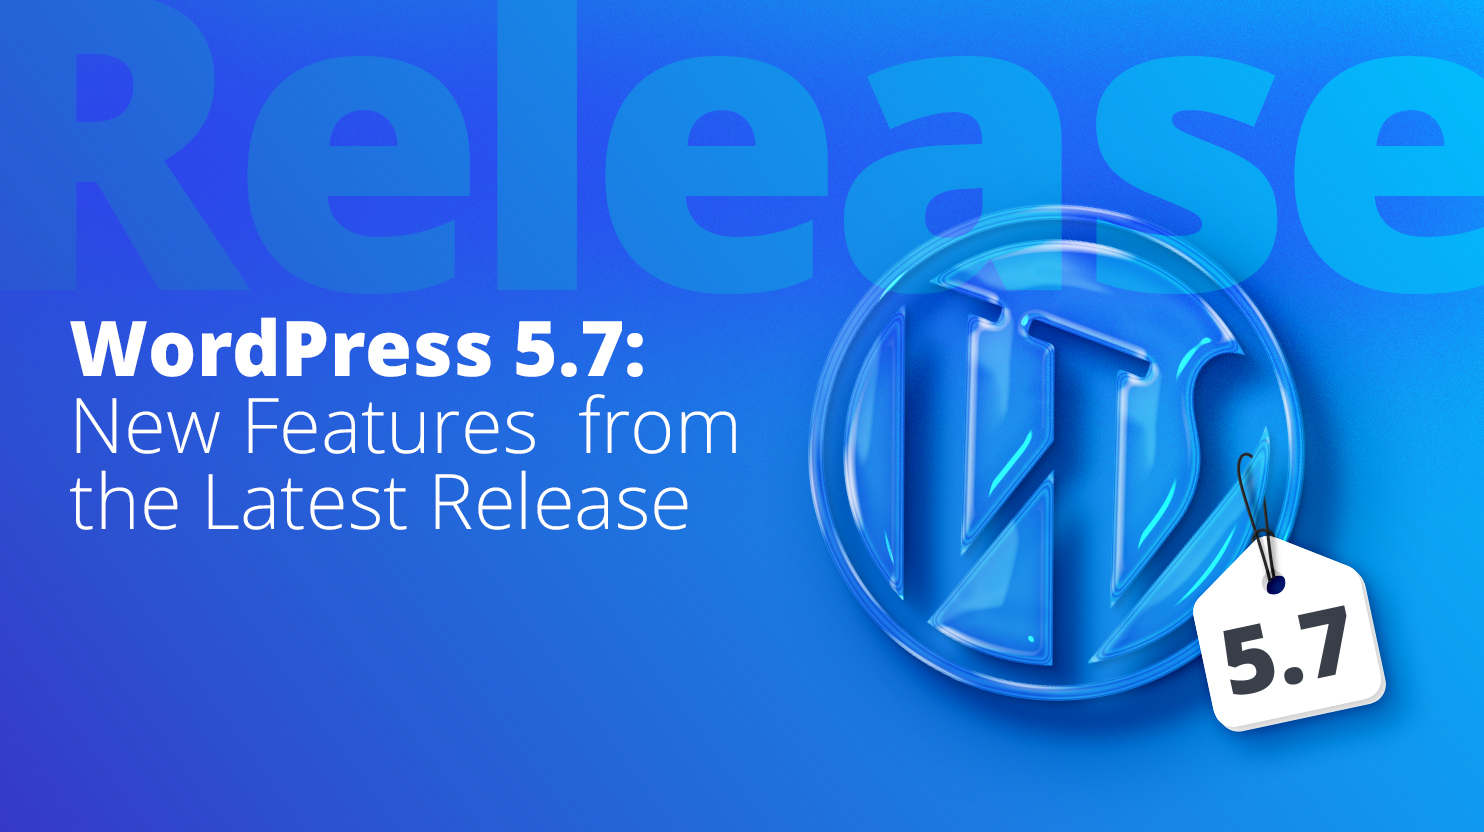 WordPress 5.7 New Features from the Latest Release